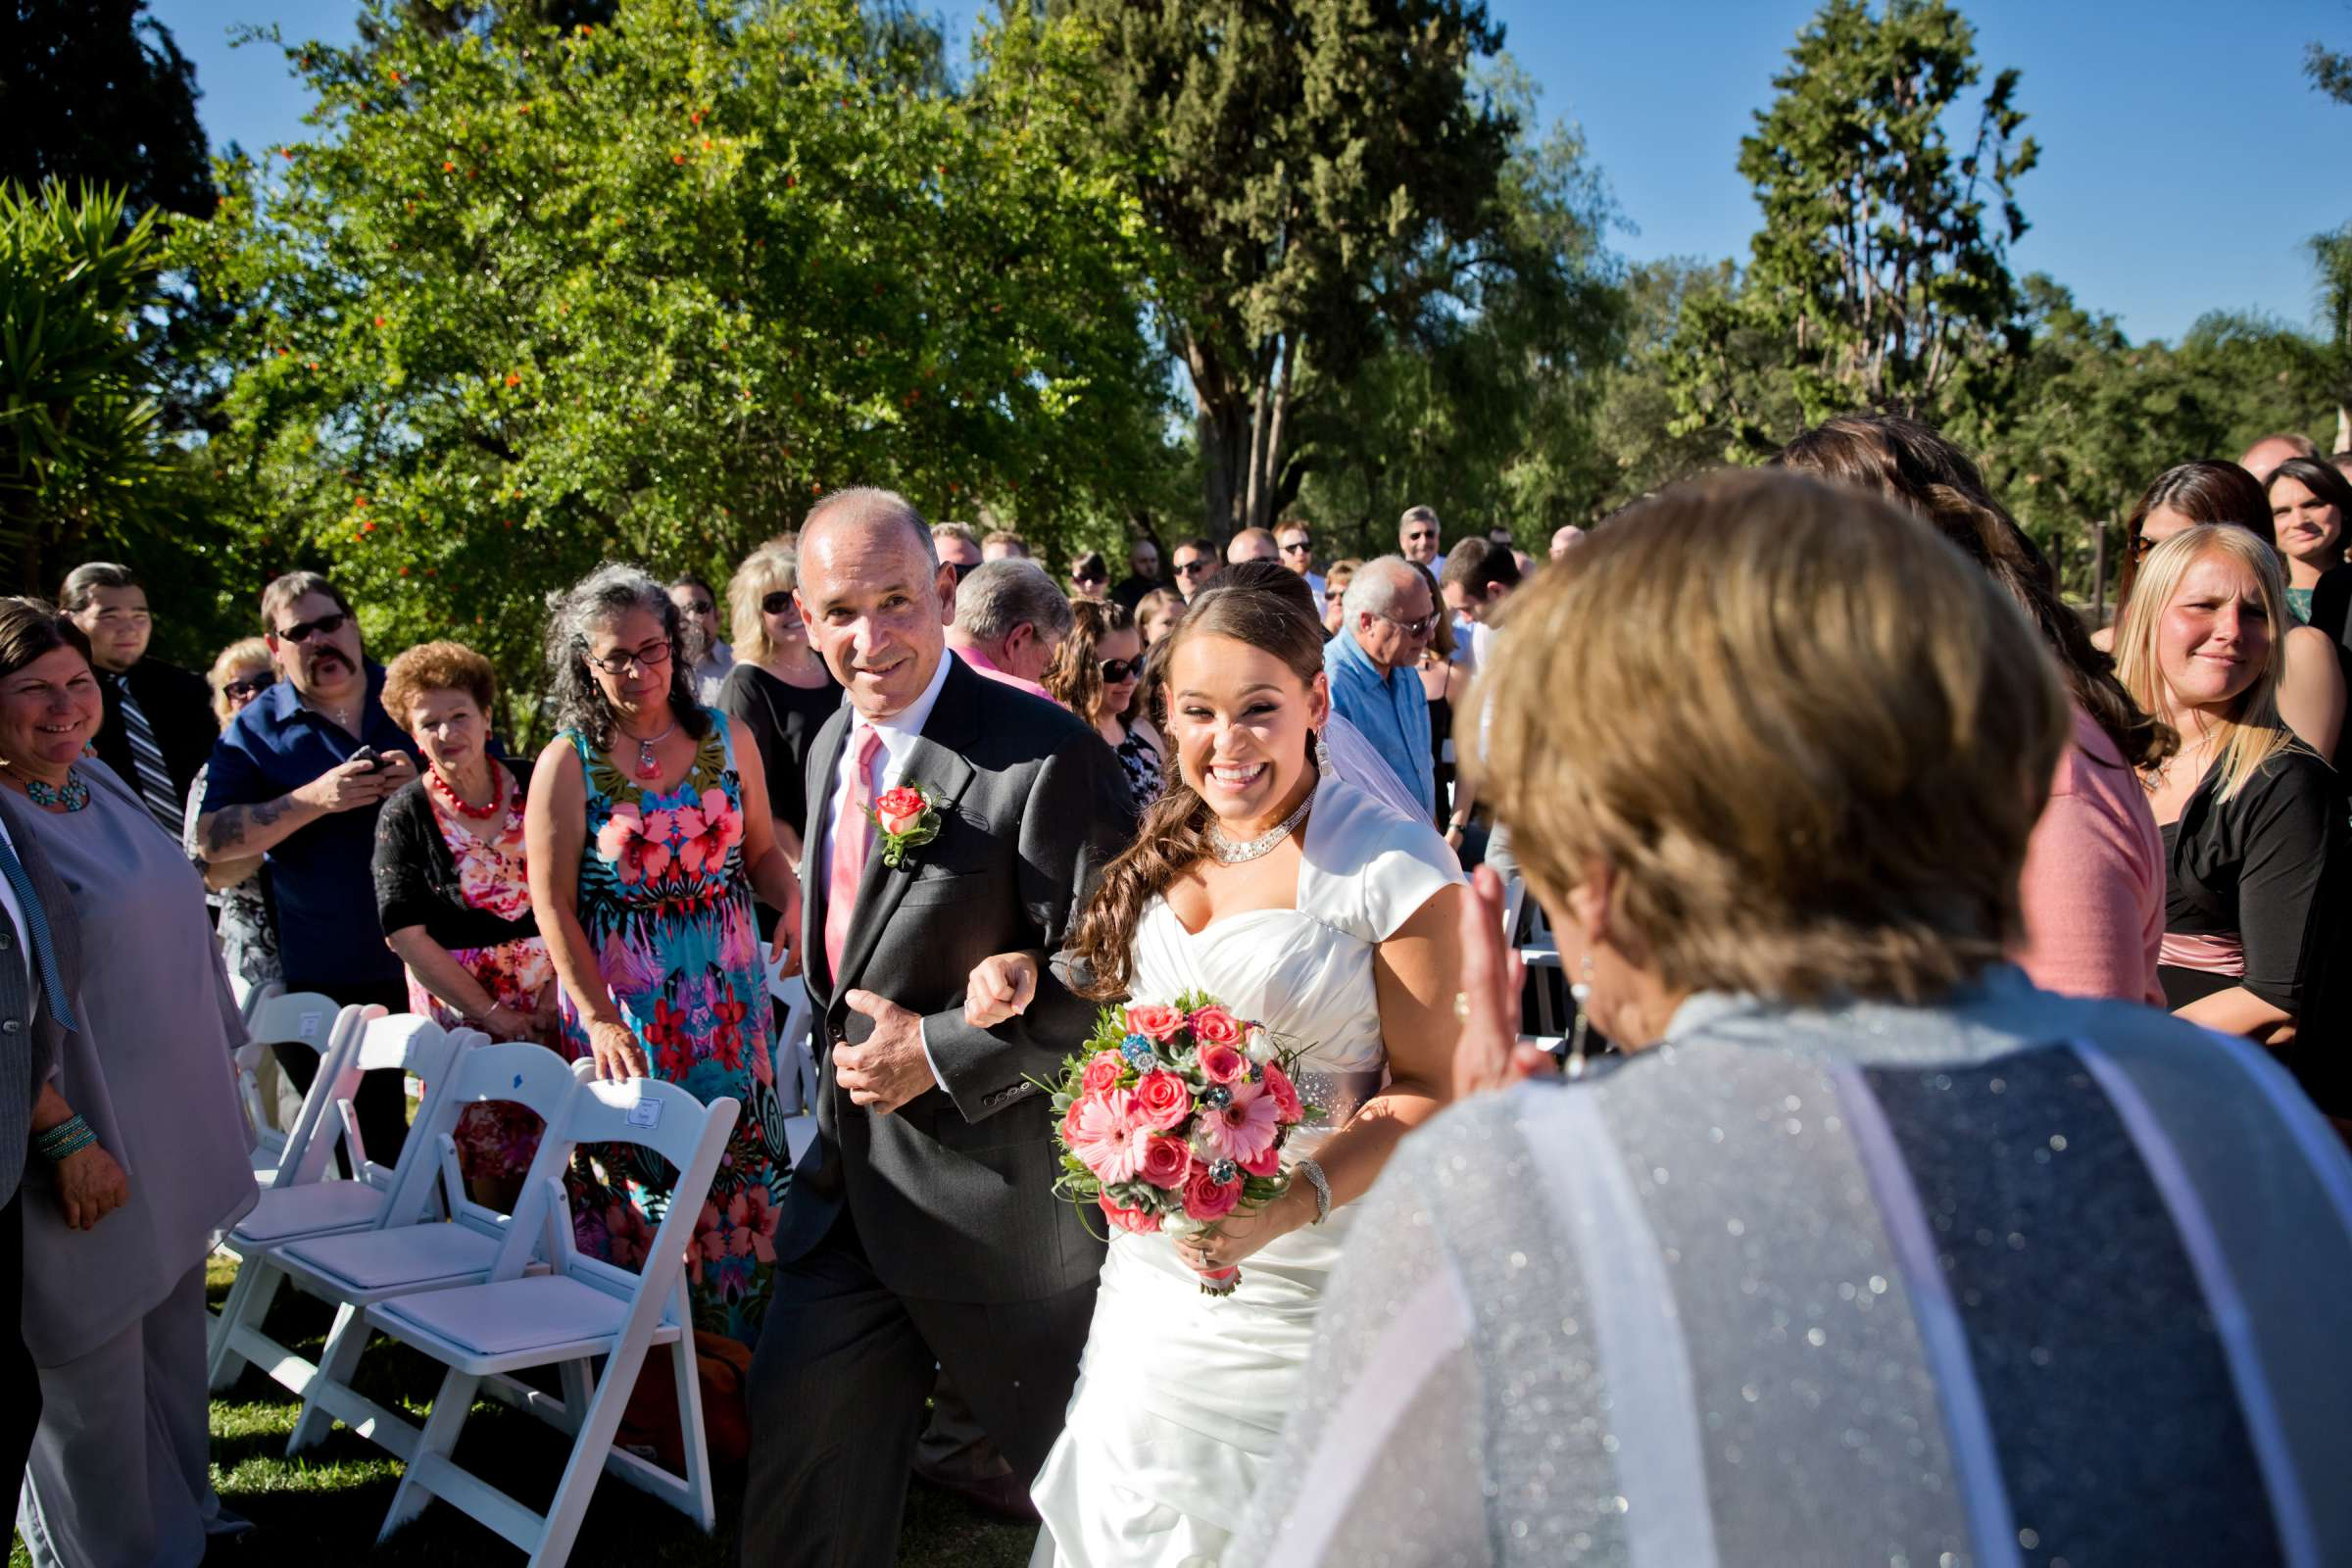 Mt Woodson Castle Wedding, Krista and Donald Wedding Photo #344717 by True Photography